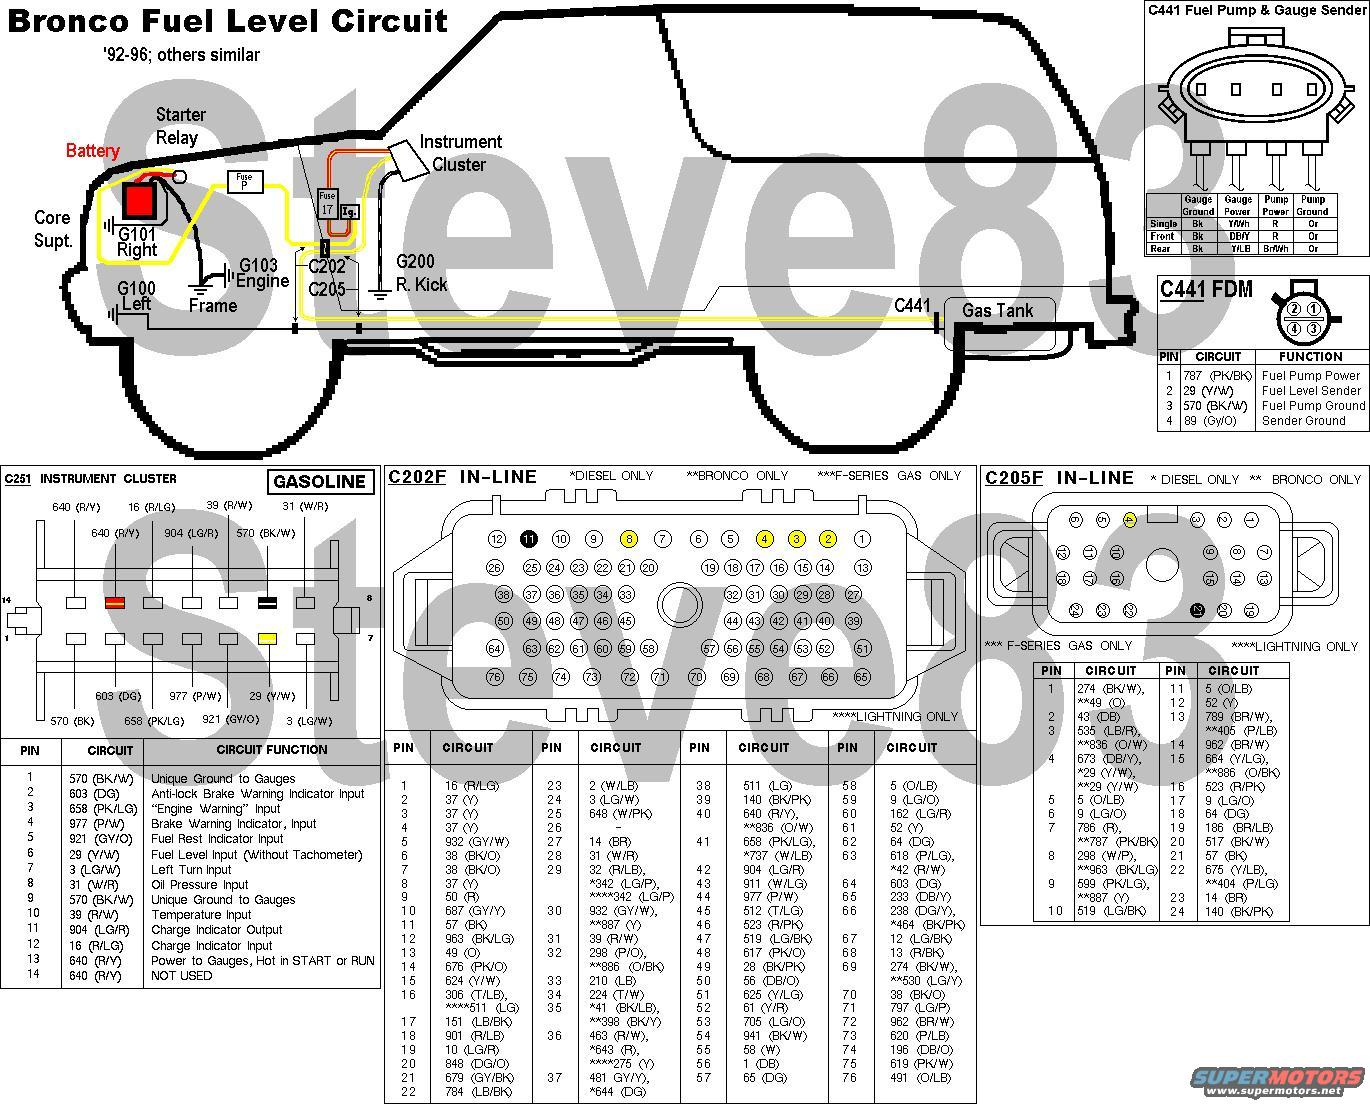 Wiring Diagram For Rear Window Full Size Bronco : 47